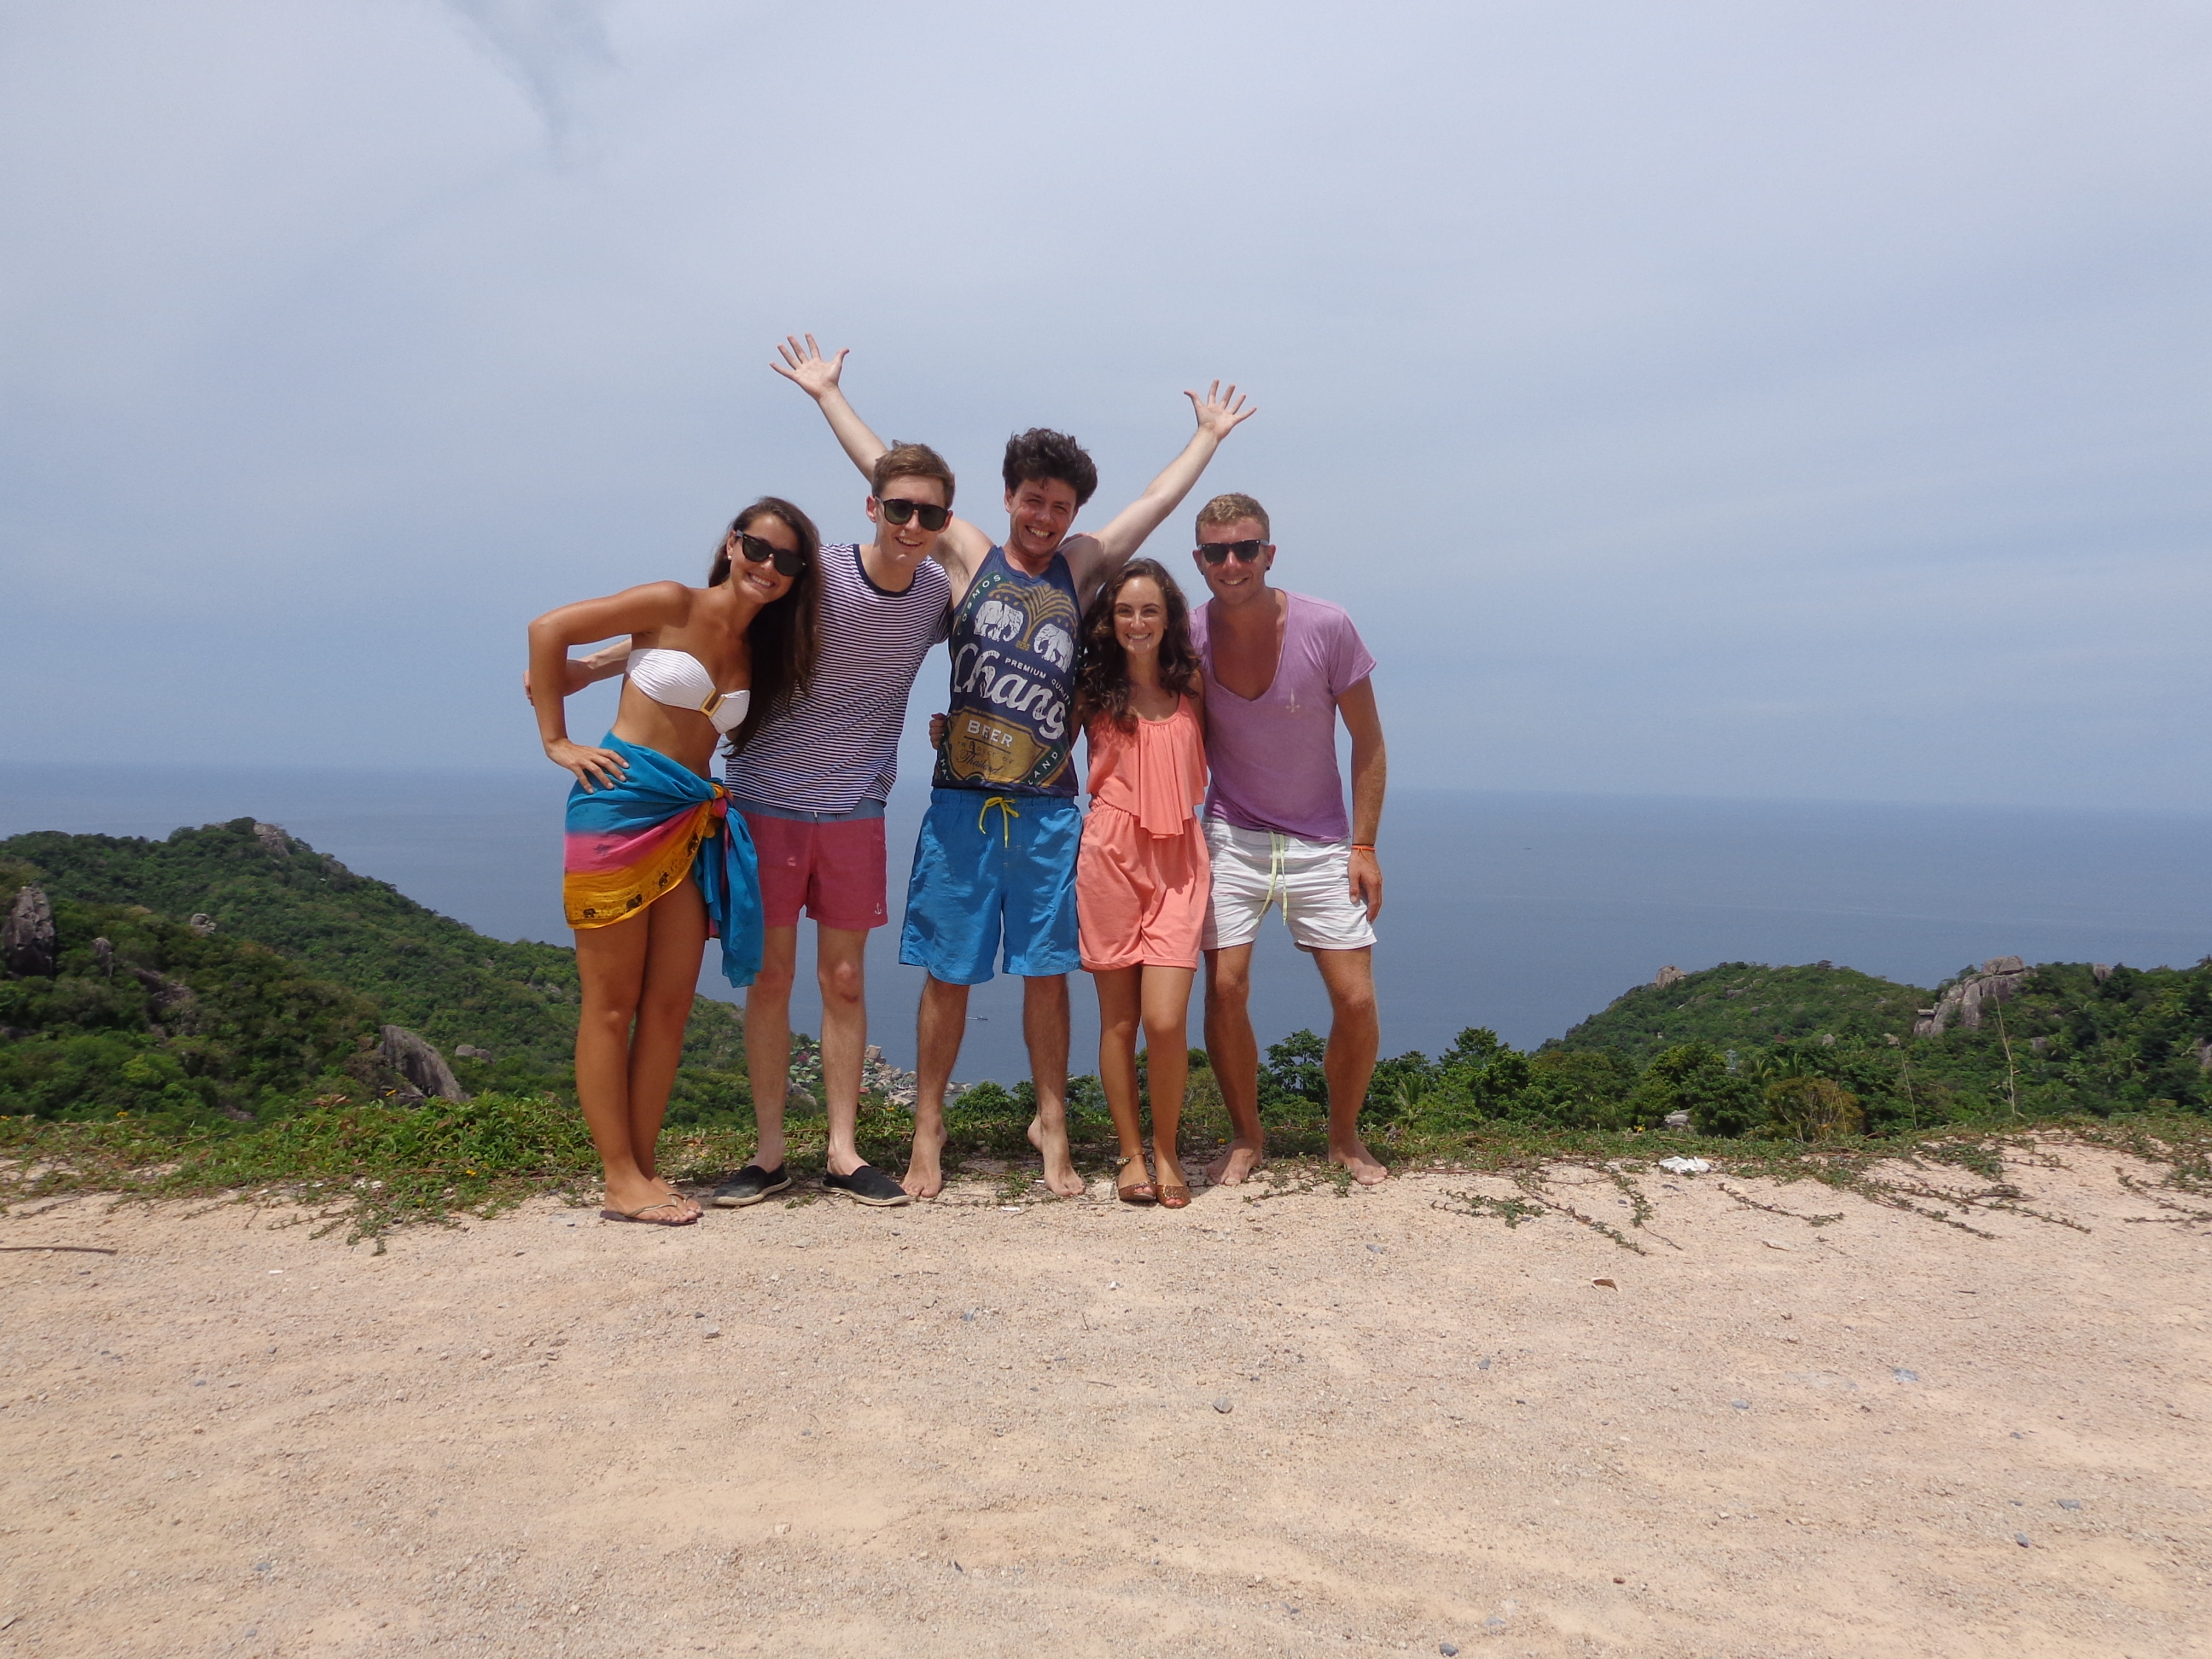 Hanging out with new friends in Koh Tao, Thailand